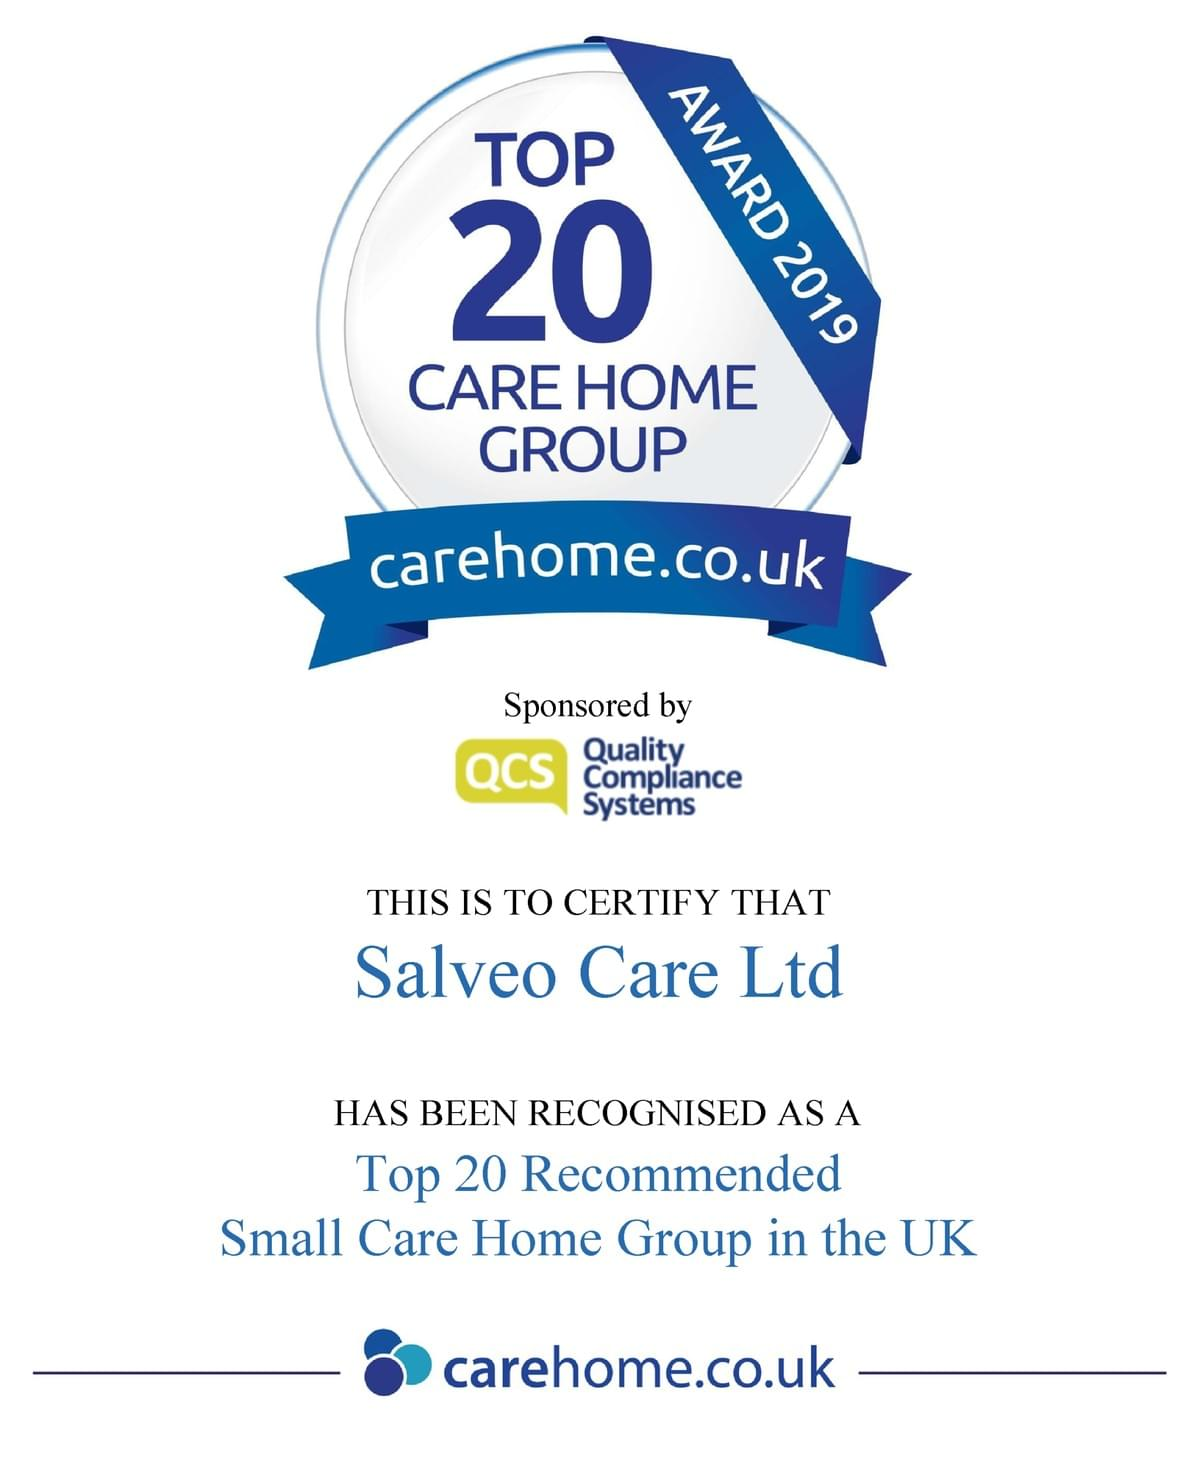 Salveo Care - Featured in Top 20 Small Care Home Groups 2017